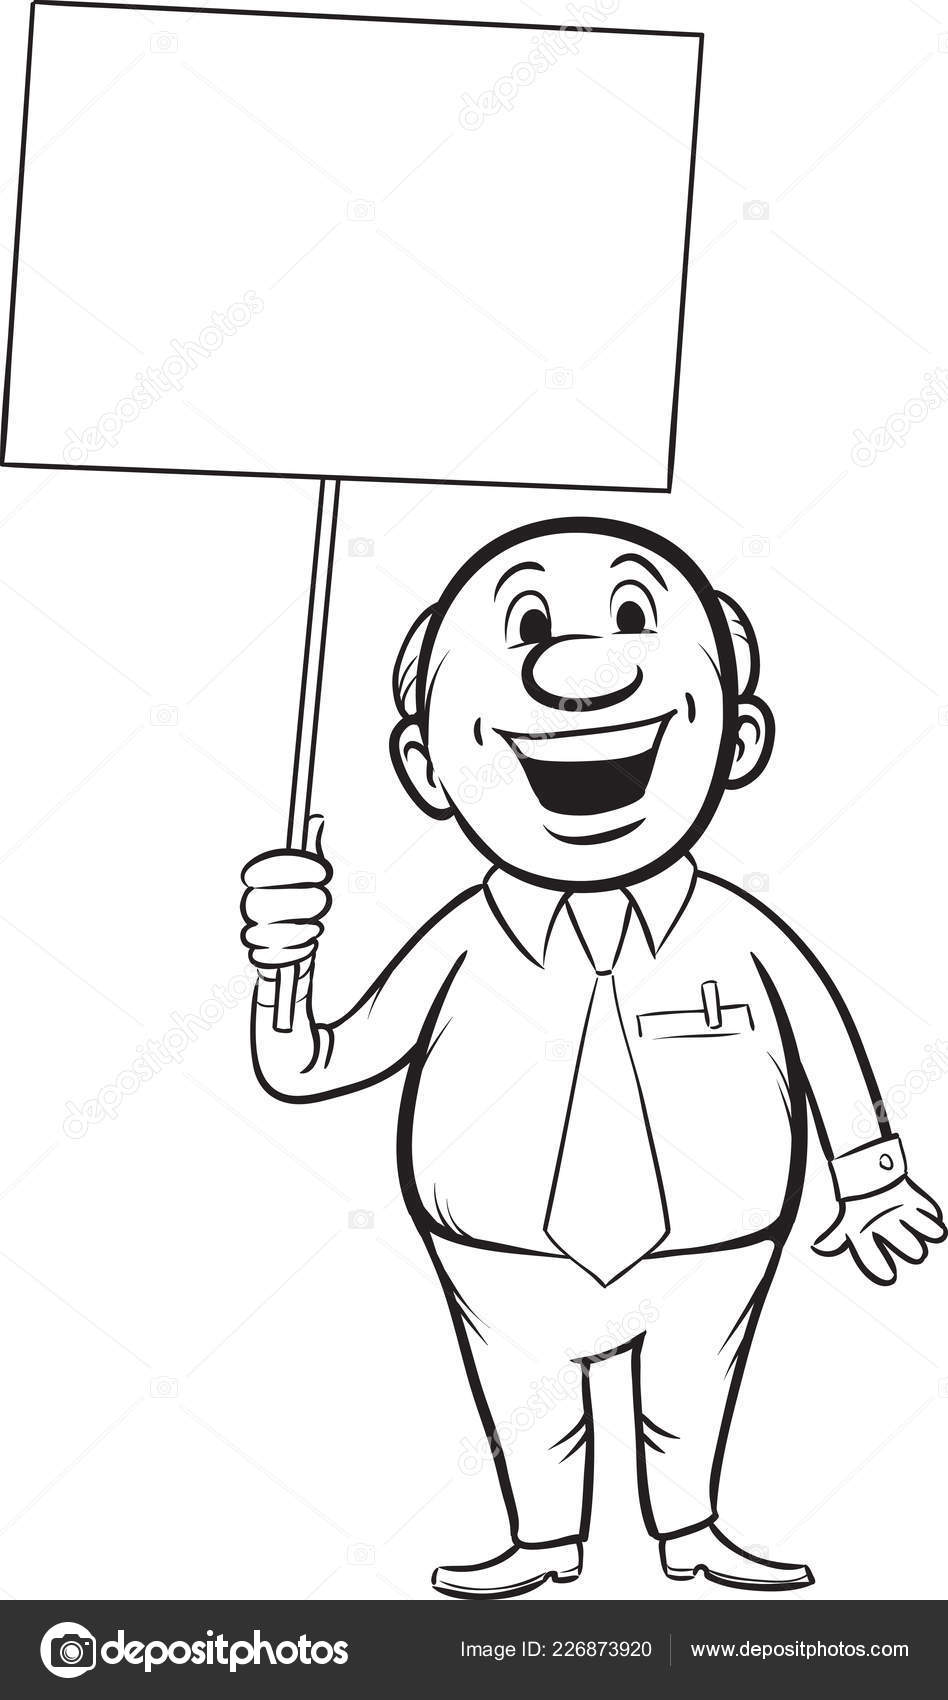 Whiteboard Drawing Cartoon Smiling Businessman Blank Placard Easy